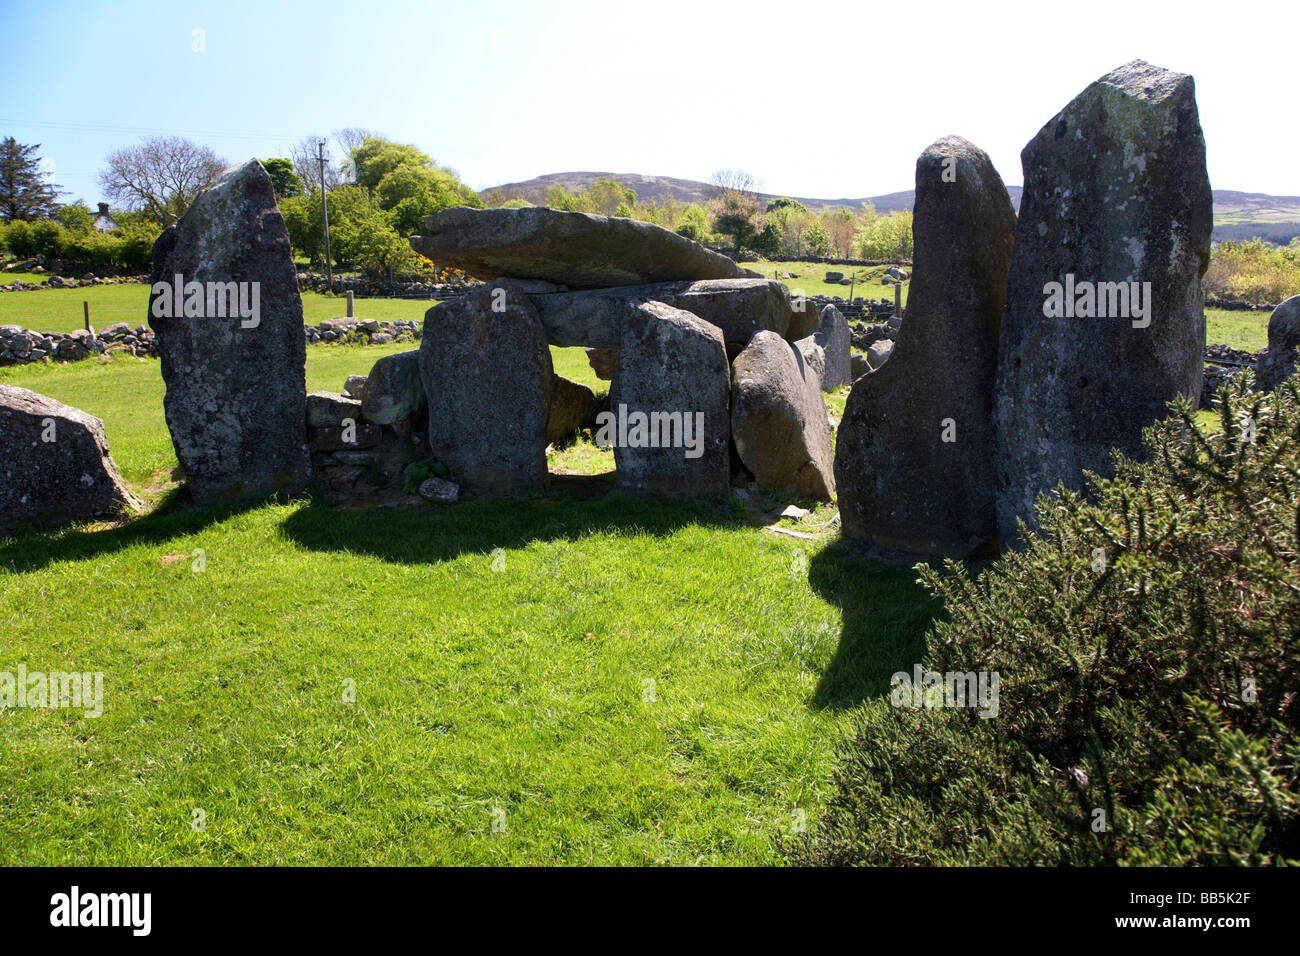 clontygora court tomb known as the kings ring south county armagh northern ireland uk Stock Photo